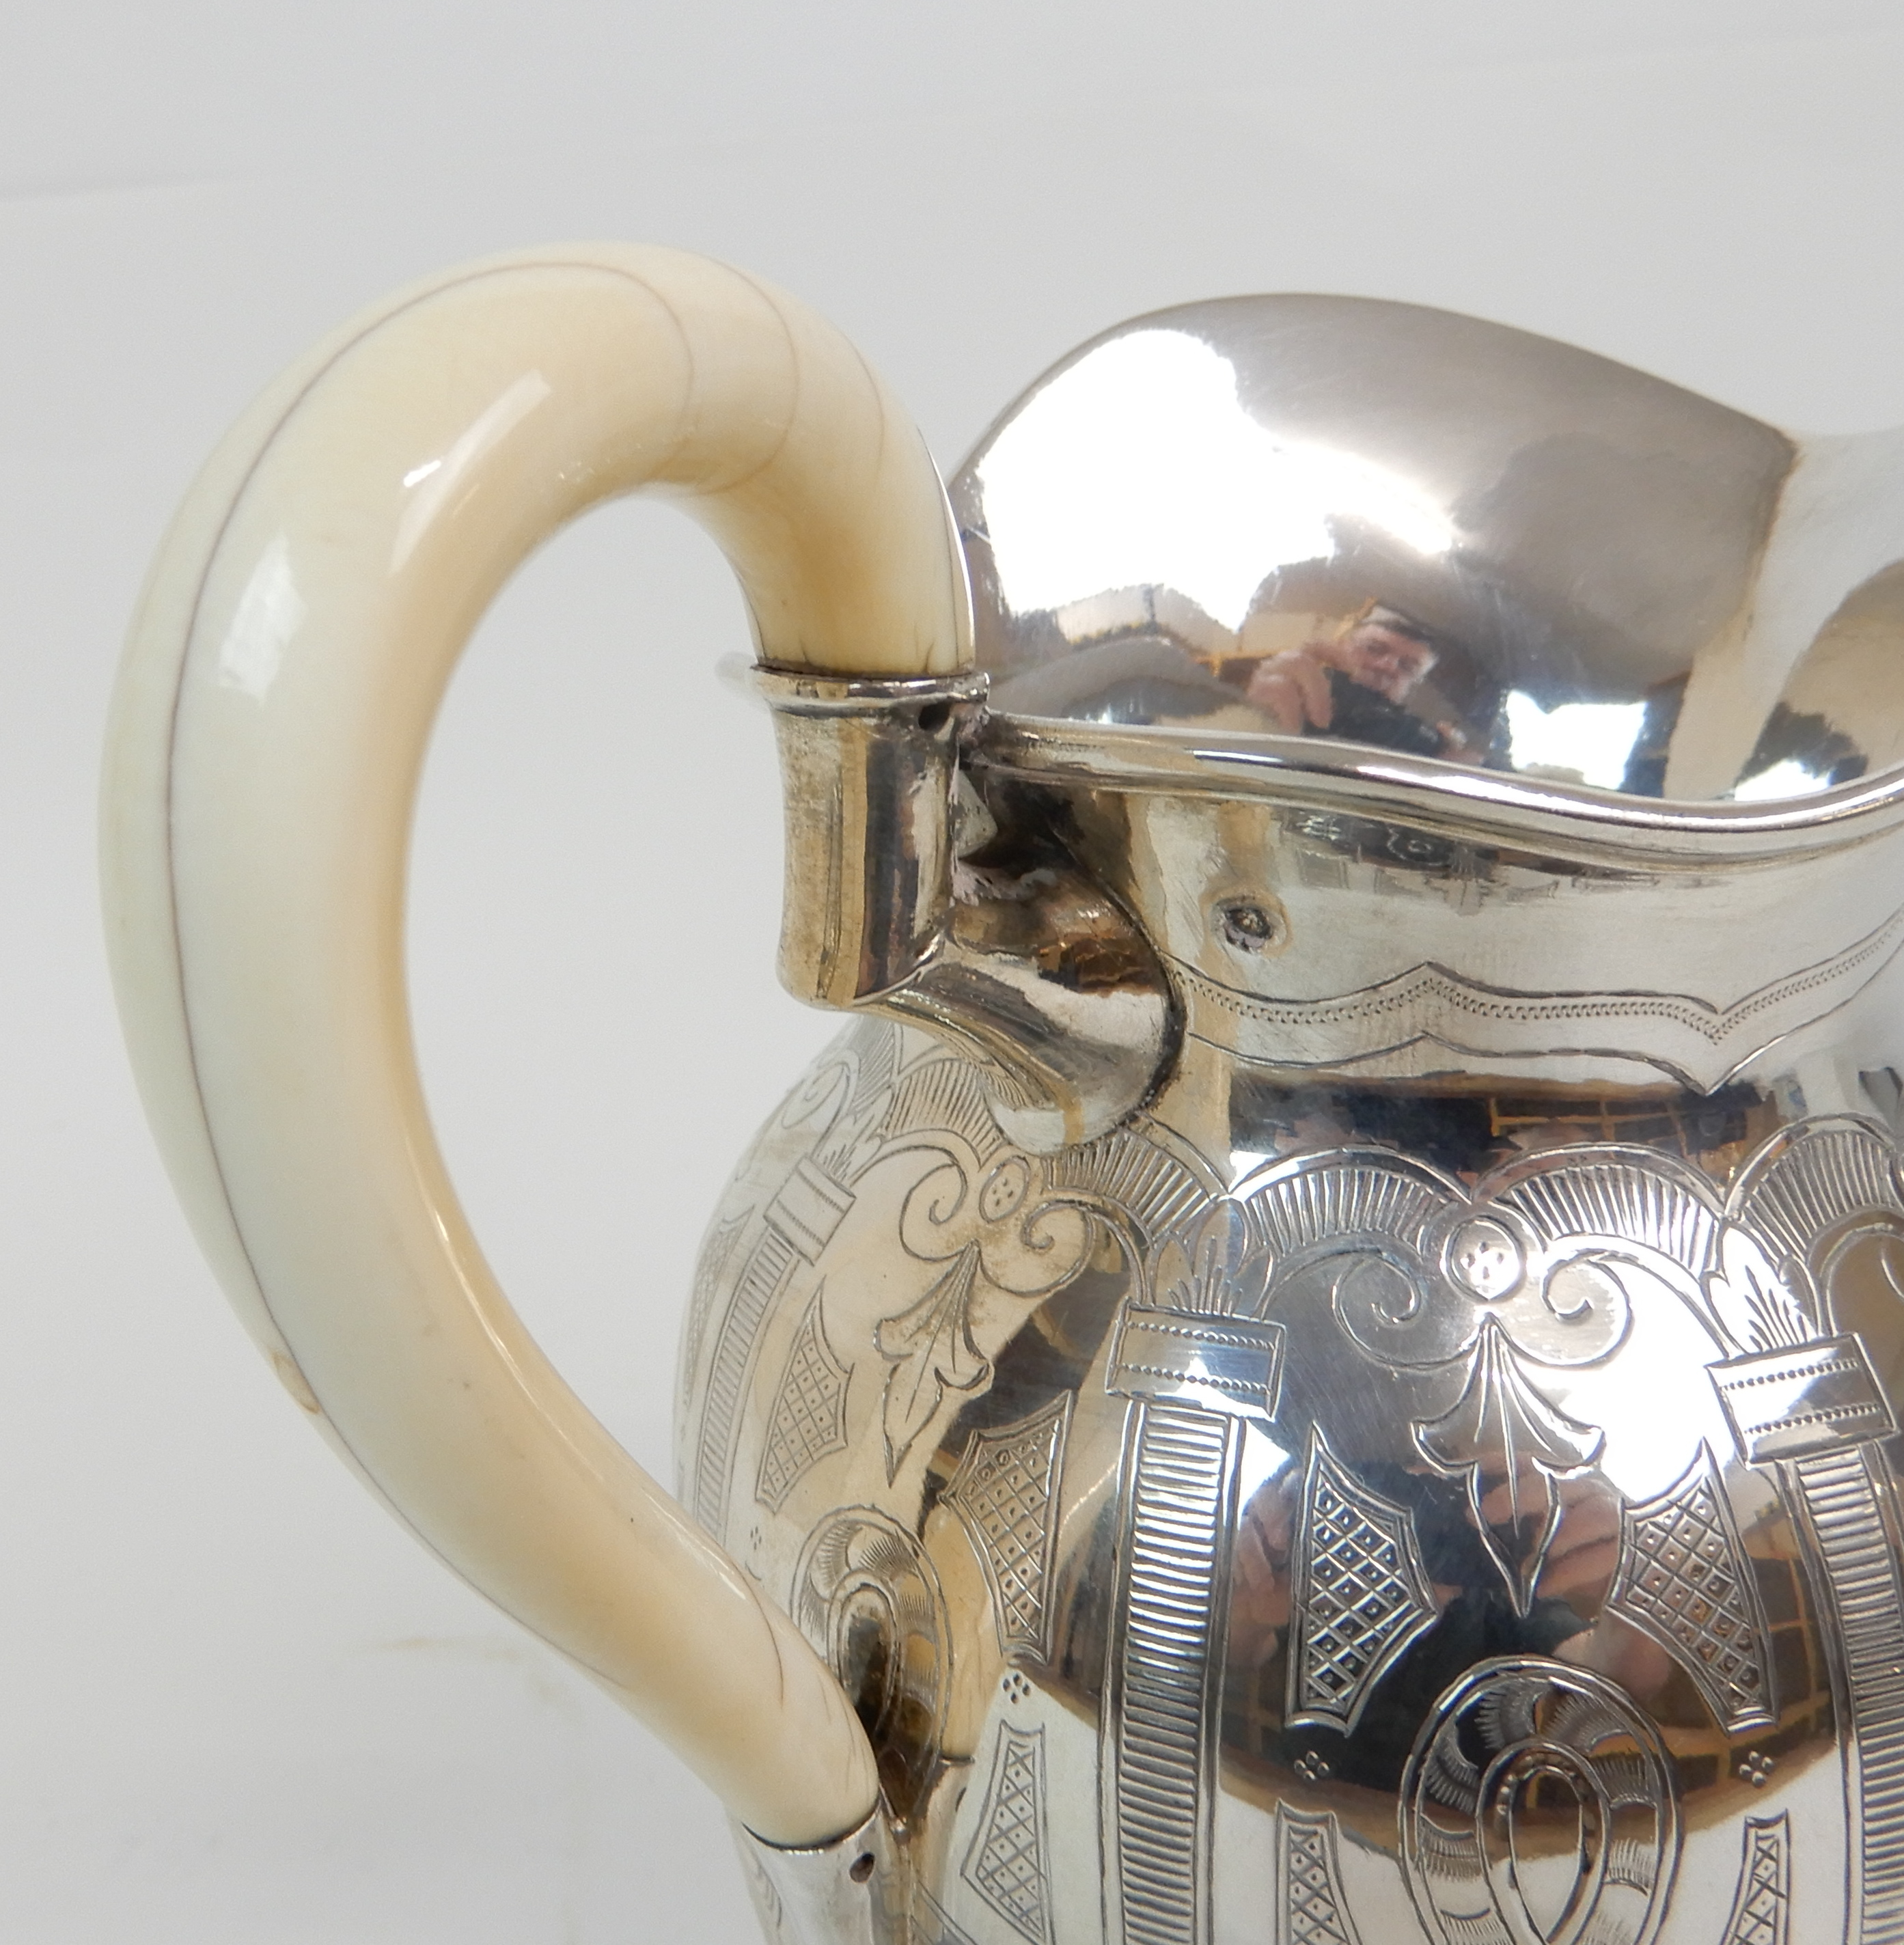 Lot 120 - A TWO PIECE VIENNESE 800 SILVER CAFE AU LAIT SET maker's marks PD, Vienna 1867 - 1922, of ovoid form